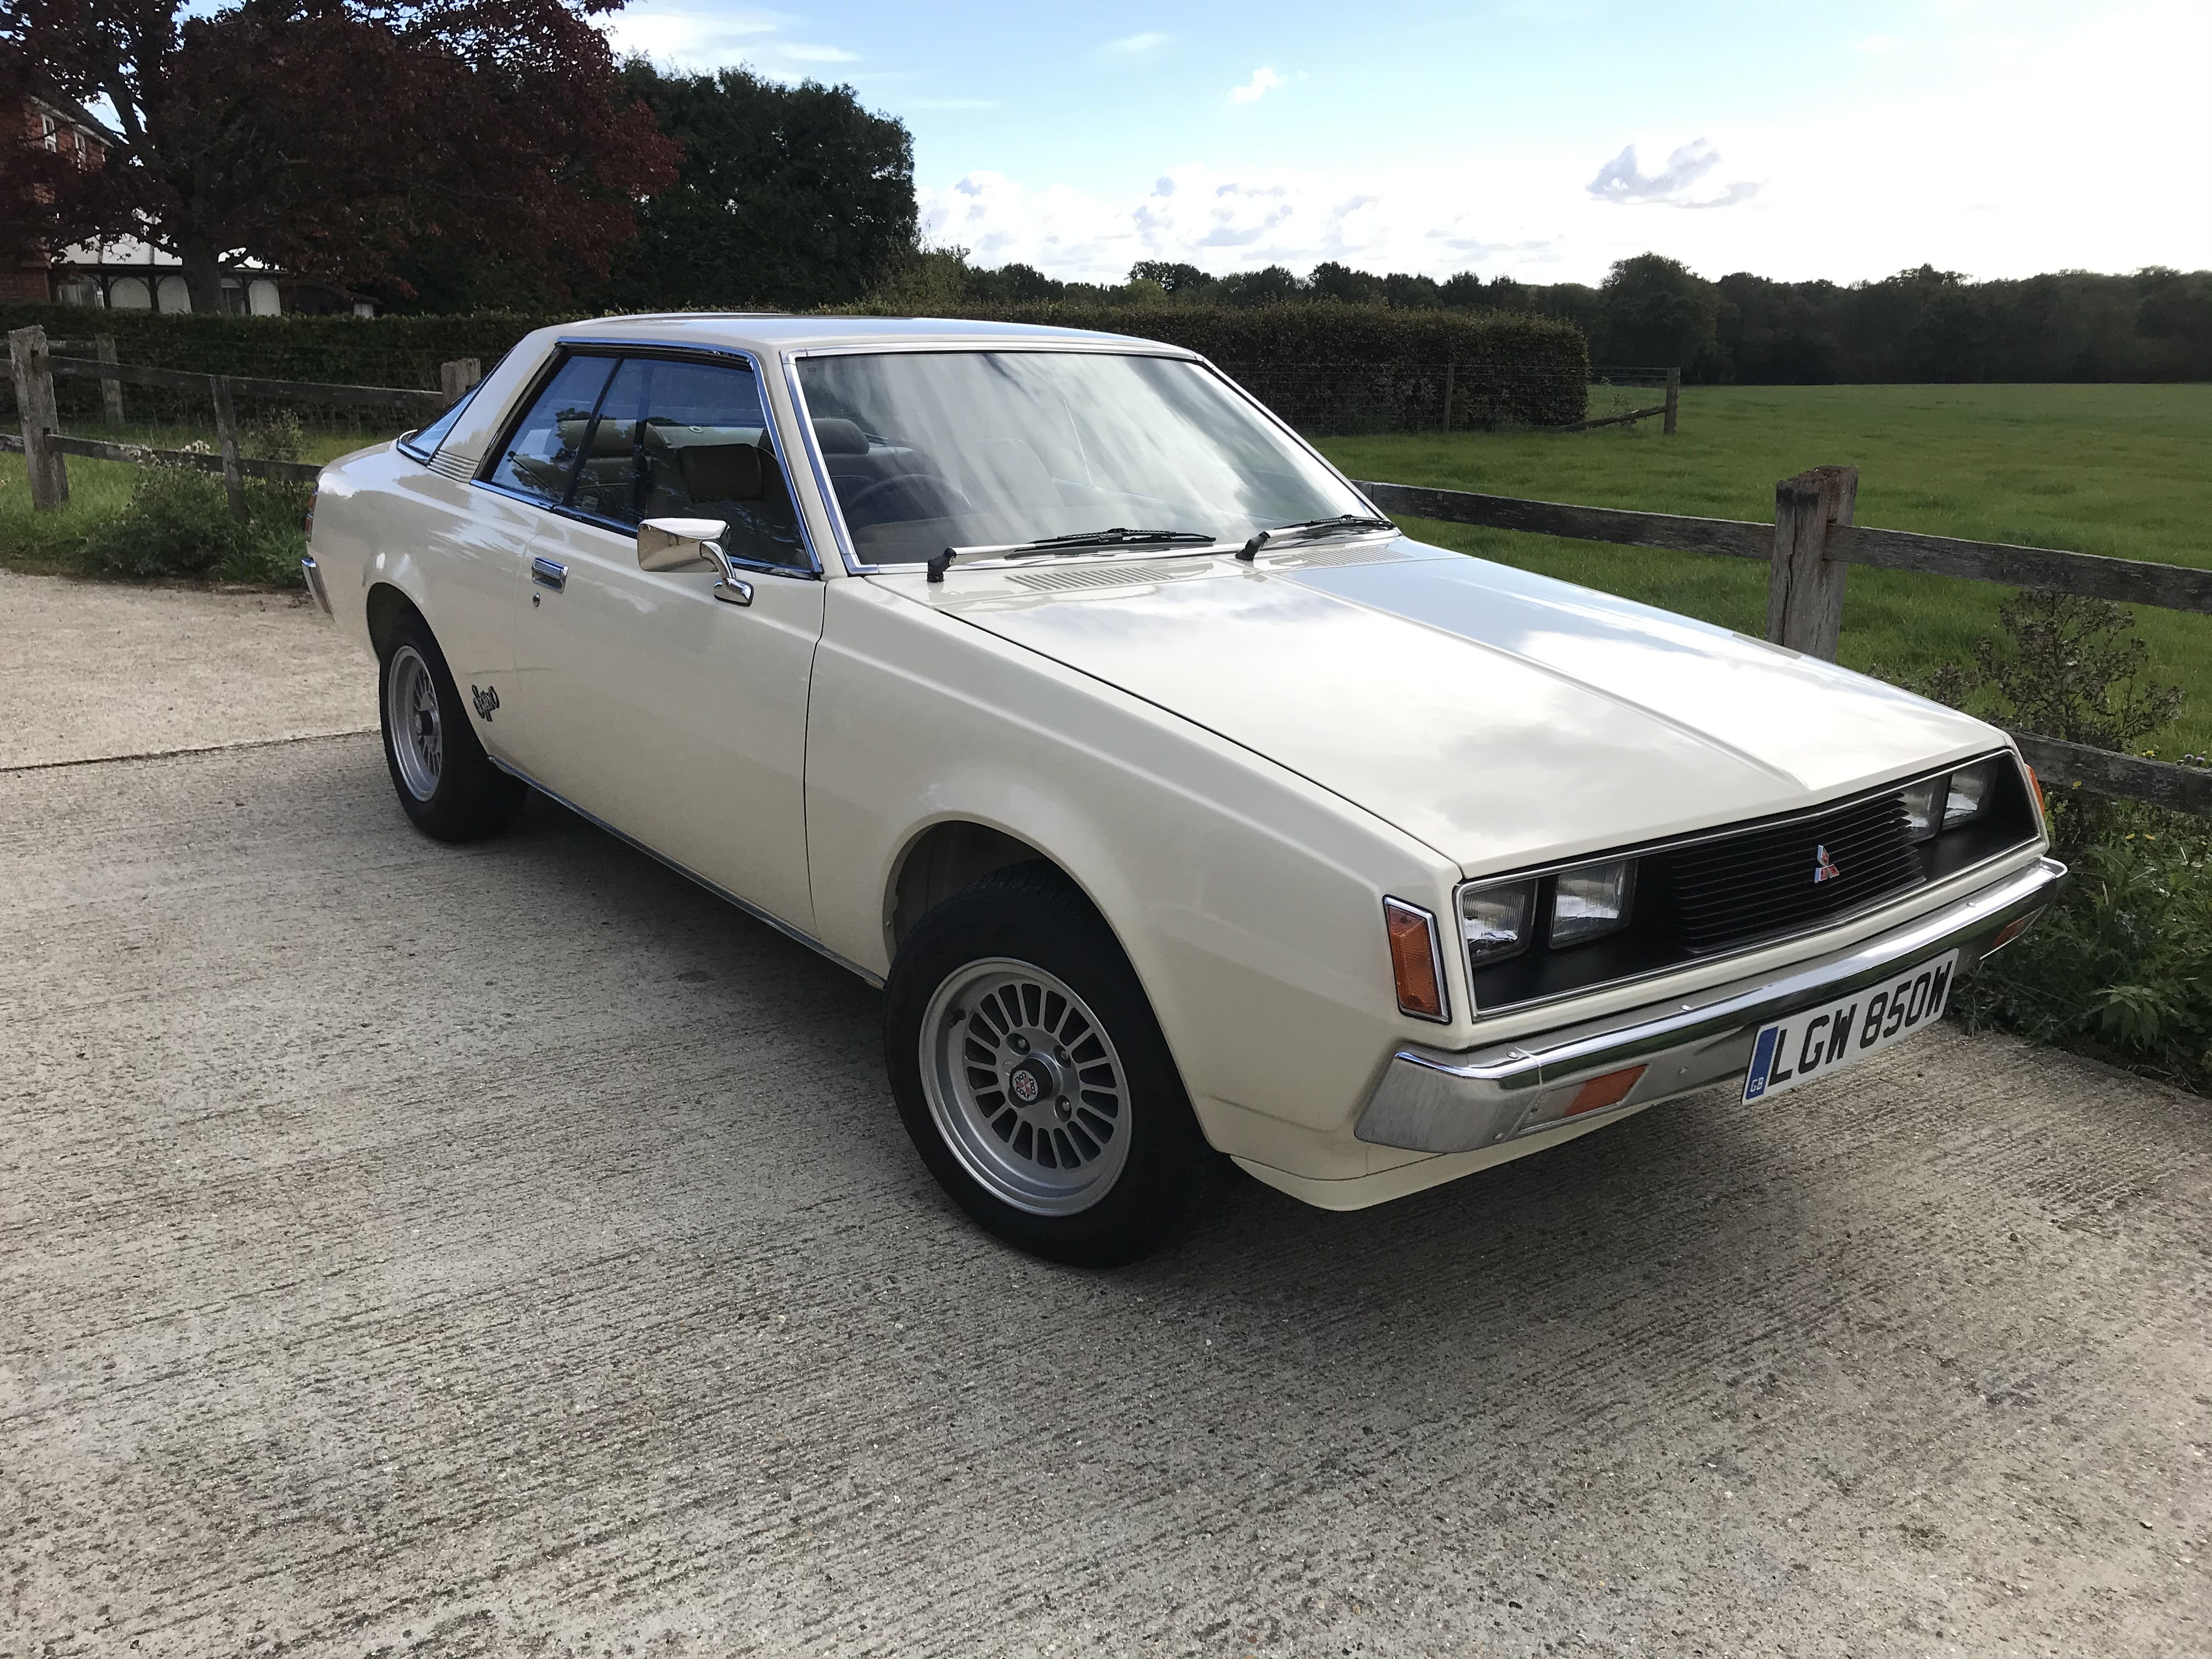 ABSOLUTELY STUNNING MITSUBISHI SAPPORO COUPE NOT STARION